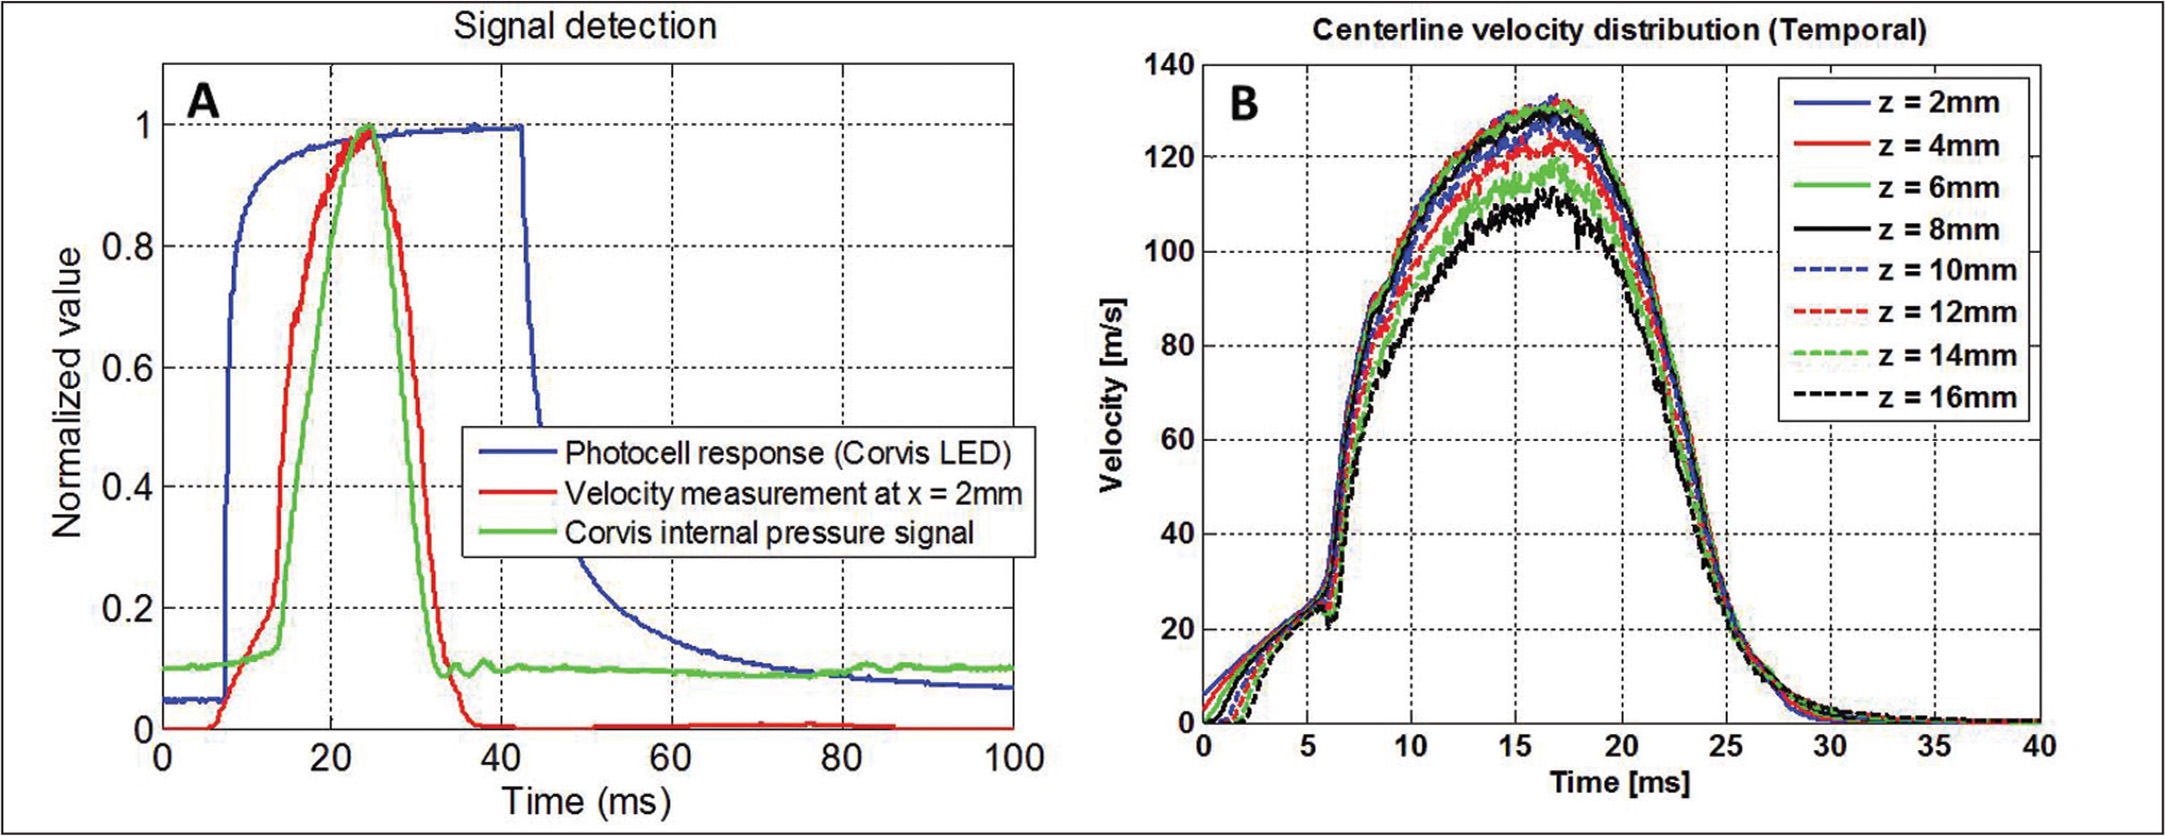 (A) Measured velocity (red) and Corvis ST (Oculus Optikgeräte GmbH, Wetzlar, Germany) exported pressure signal (green), both time-synchronized by the photo cell signal (blue). (B) Centerline velocity distribution as a function of distance from the nozzle.